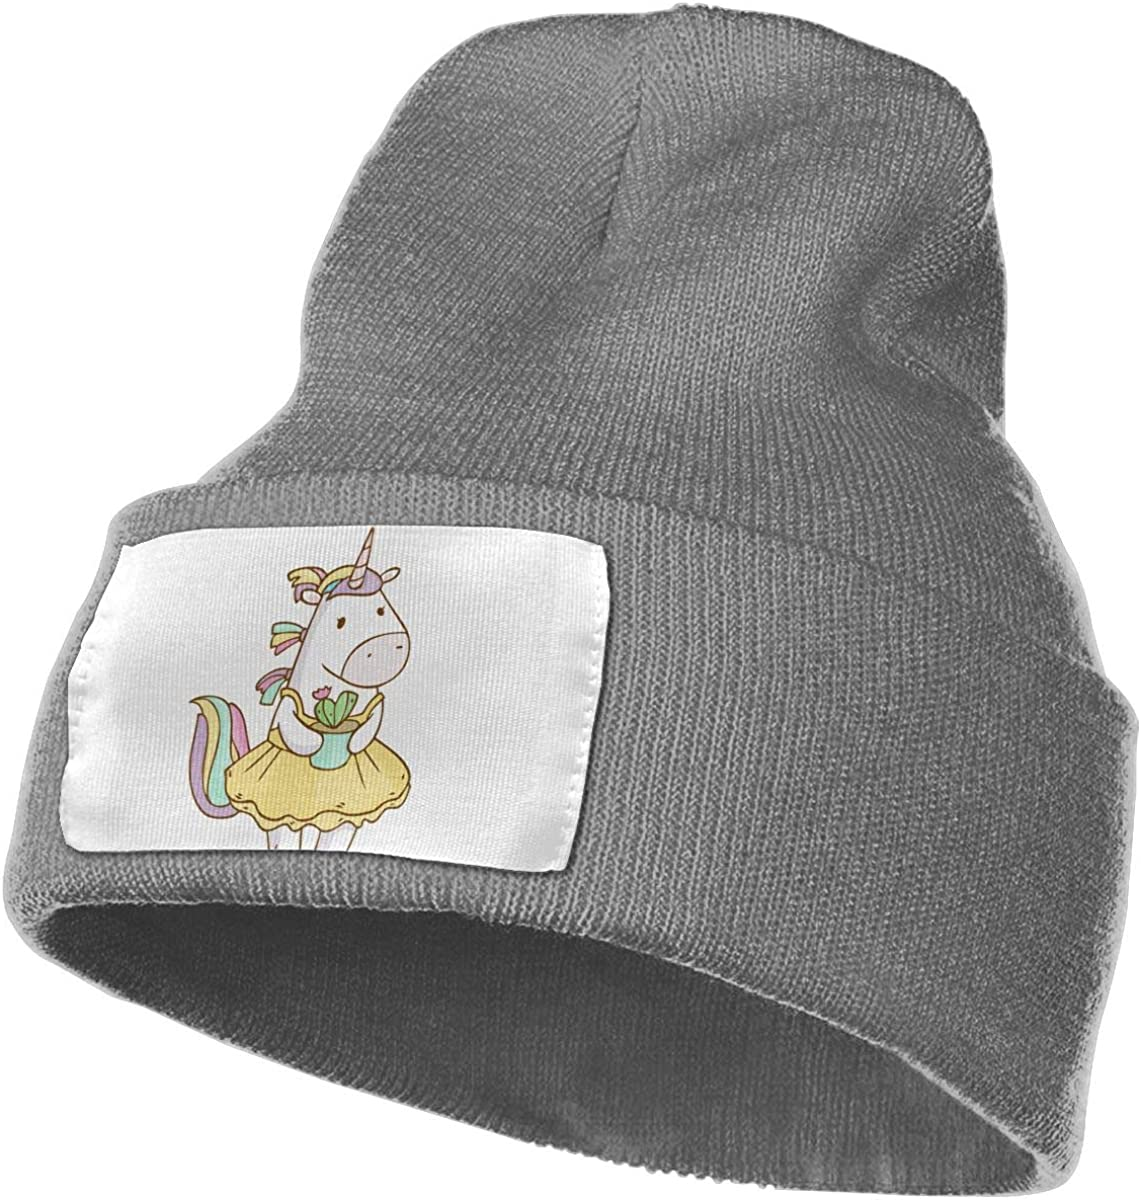 Unicorn Girls Have Cactus in Their Hands Unisex Fashion Knitted Hat Luxury Hip-Hop Cap